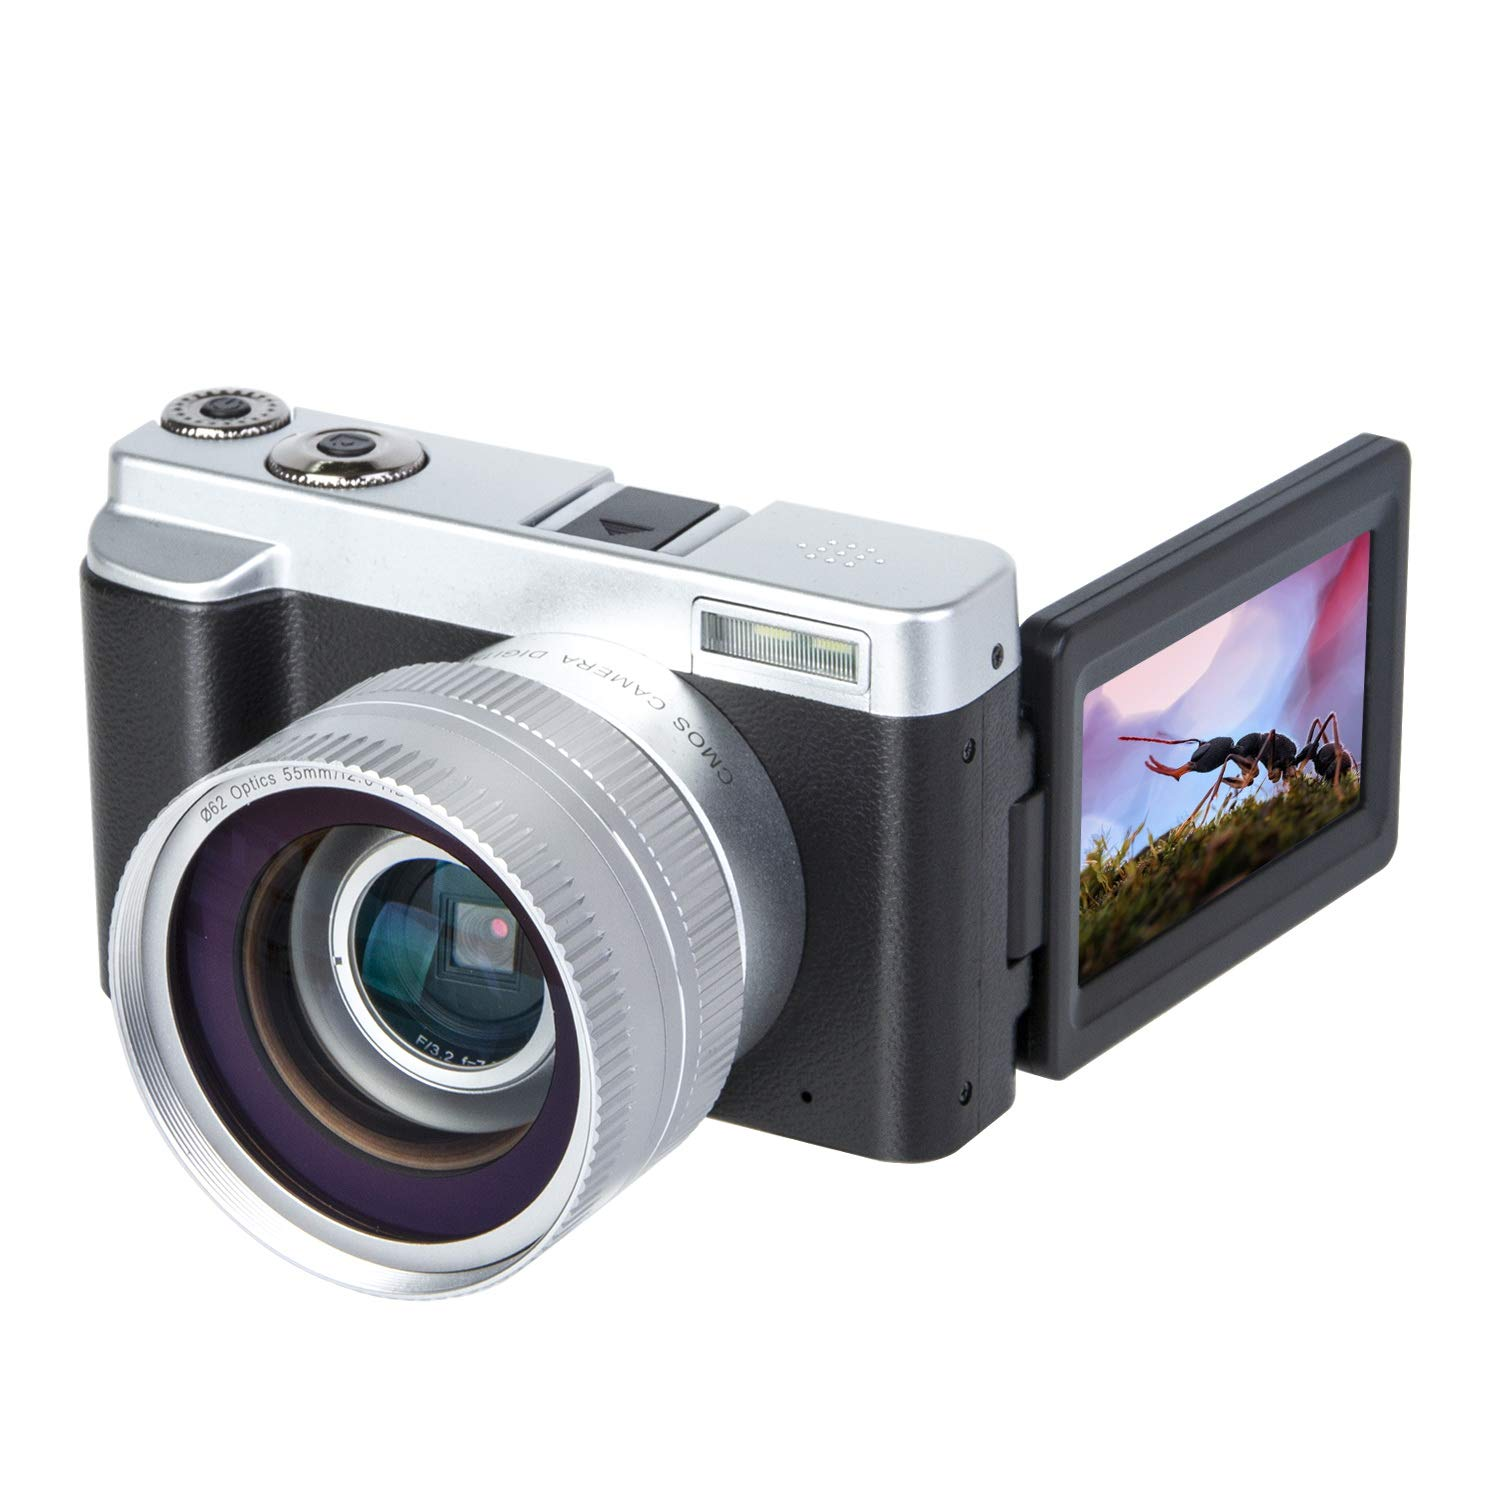 Digital Camera Video Camera Vlogging YouTube Recorder HD1080P 30FPS 24.0MP 3.0 Inch Flip Screen 16X Digital Zoom WiFi Camera with Wide Angle Lens and 2 Batteries